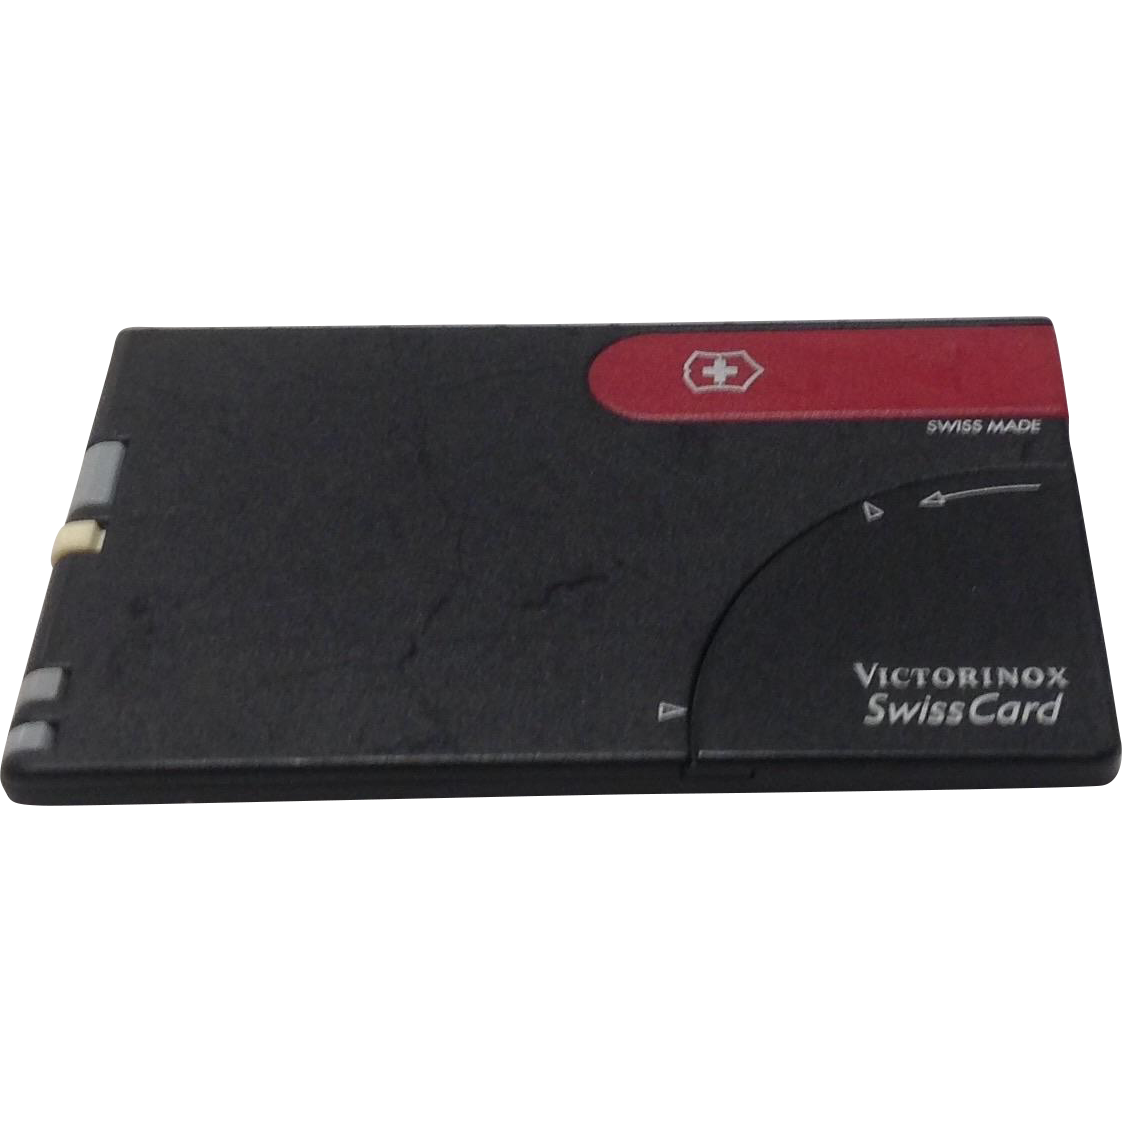 Victorinox Swiss Army Swiss Card Credit Card Multitool